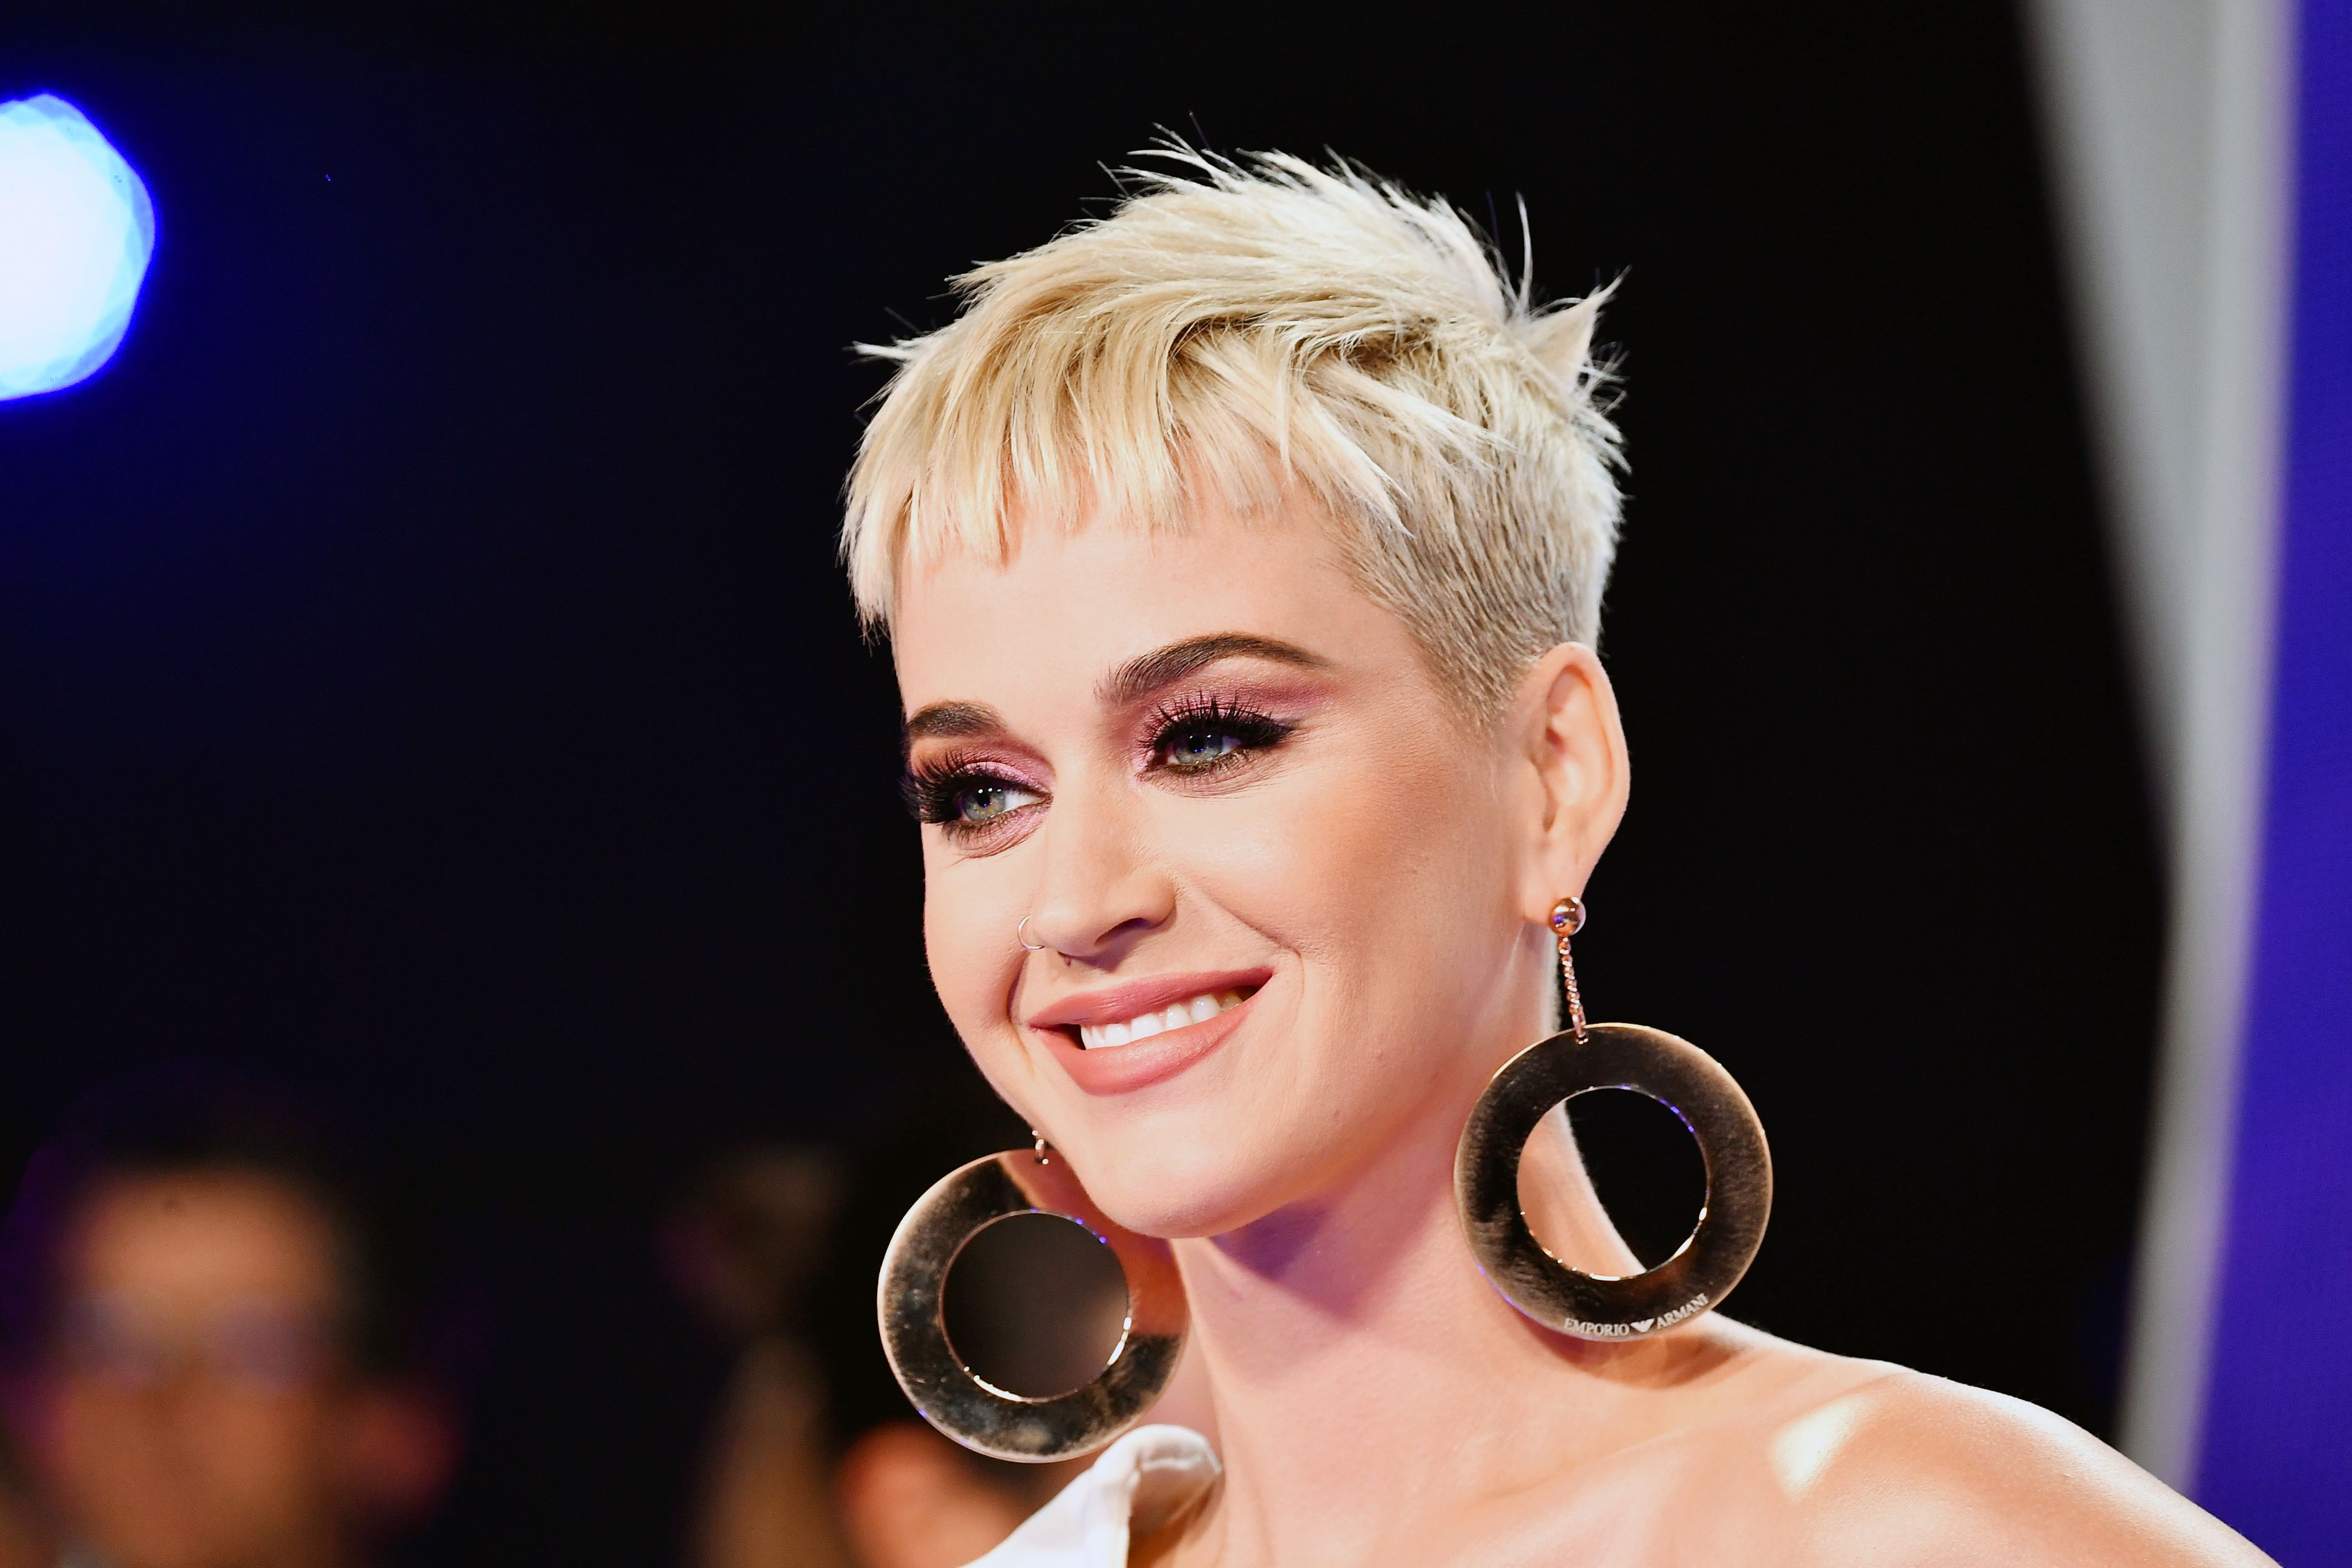 Katy Perry Got Long, Blonde Hair and Looks Like a Completely Different Person